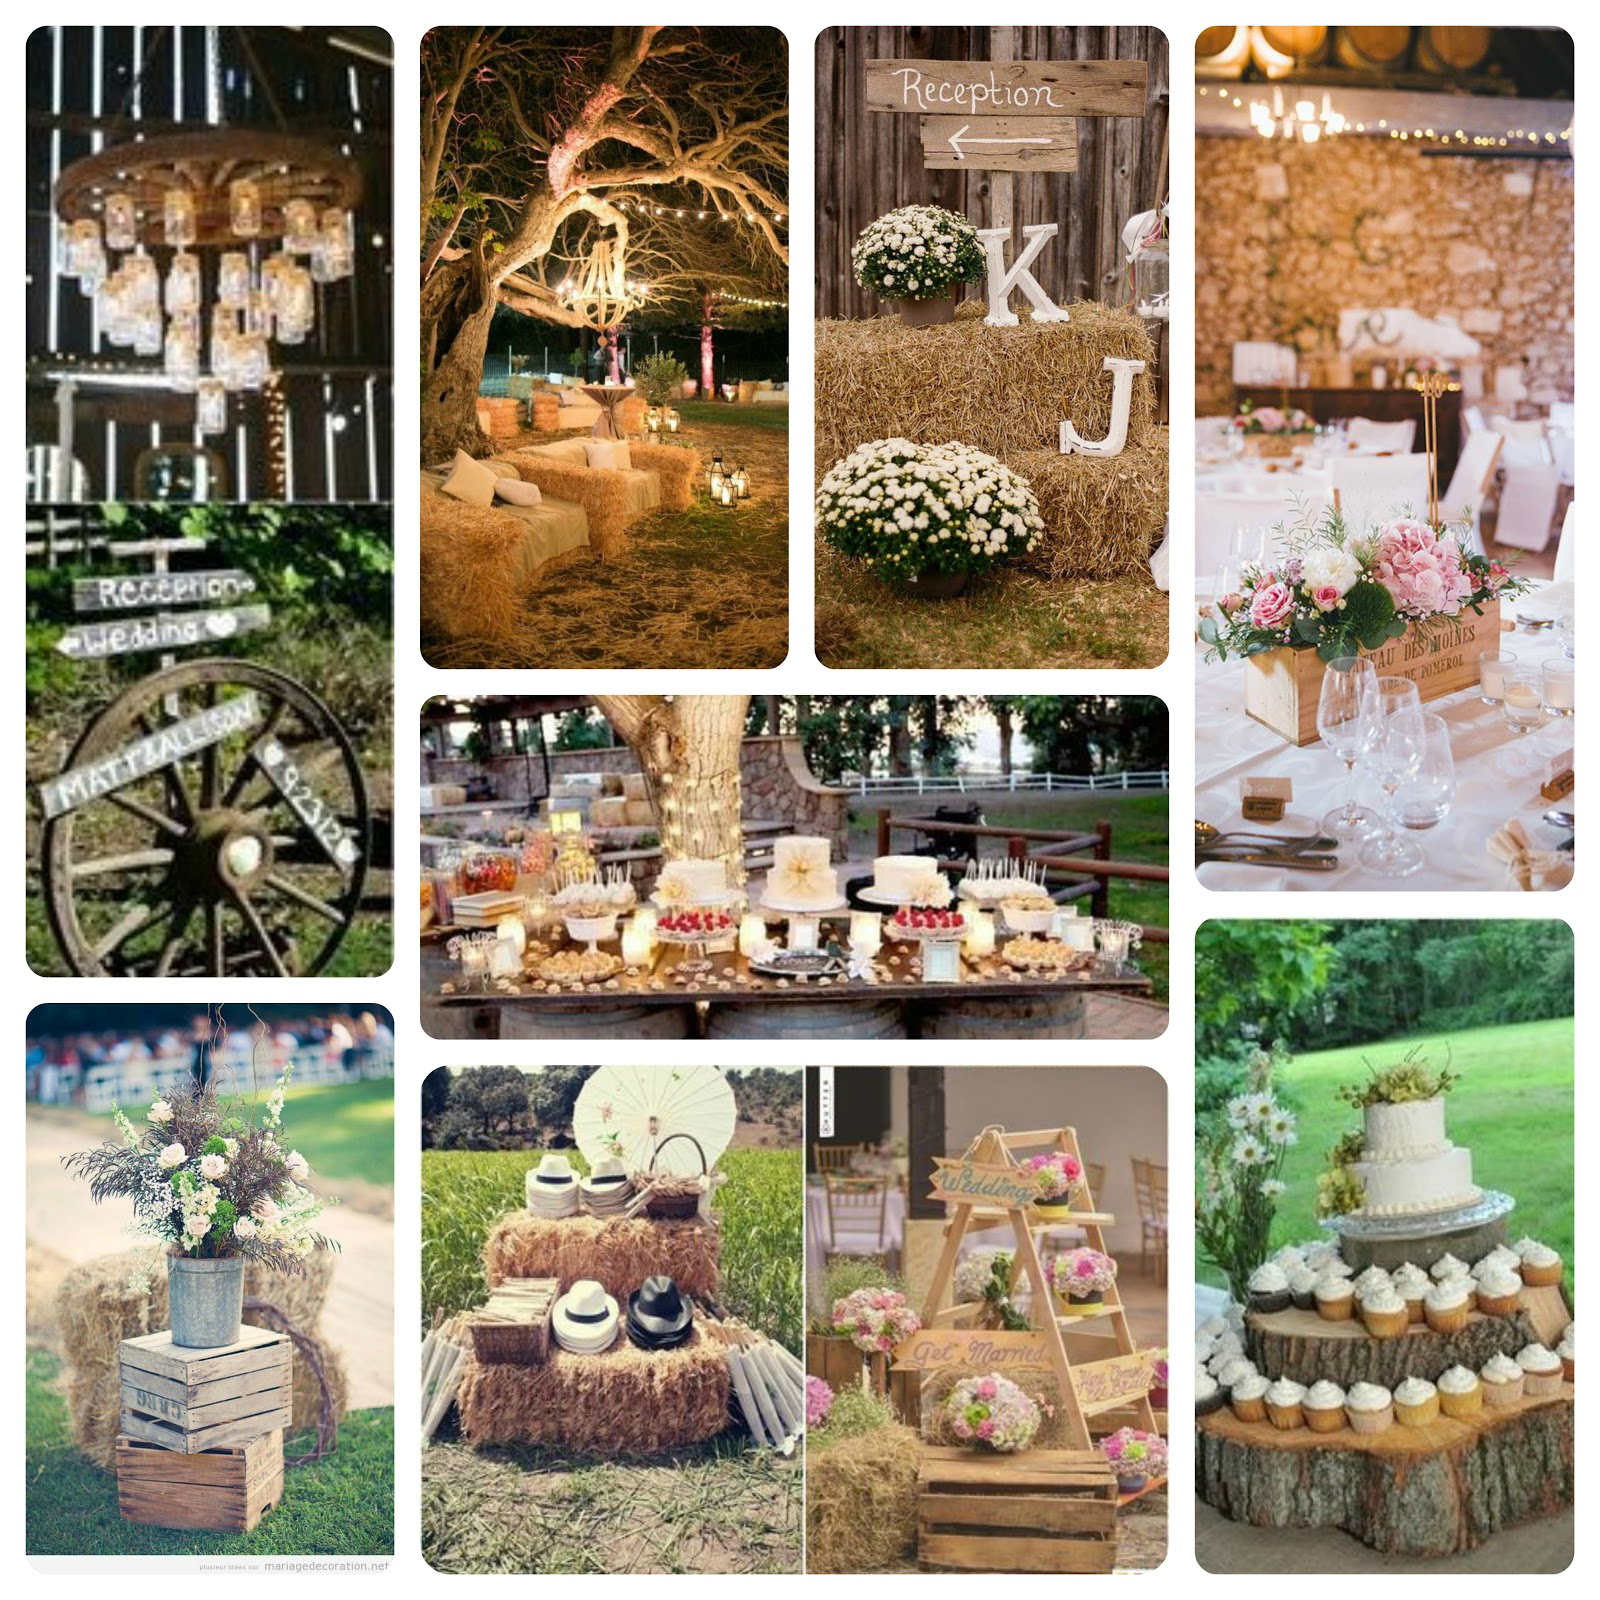 Rustique-chic-theme-style-ambiance-rustic-chic-cest-quoi-rustique-rustic-chic-decoration-couleurs-scenographie-idees-alexa-receptioncnographie-ides-alexa-rception